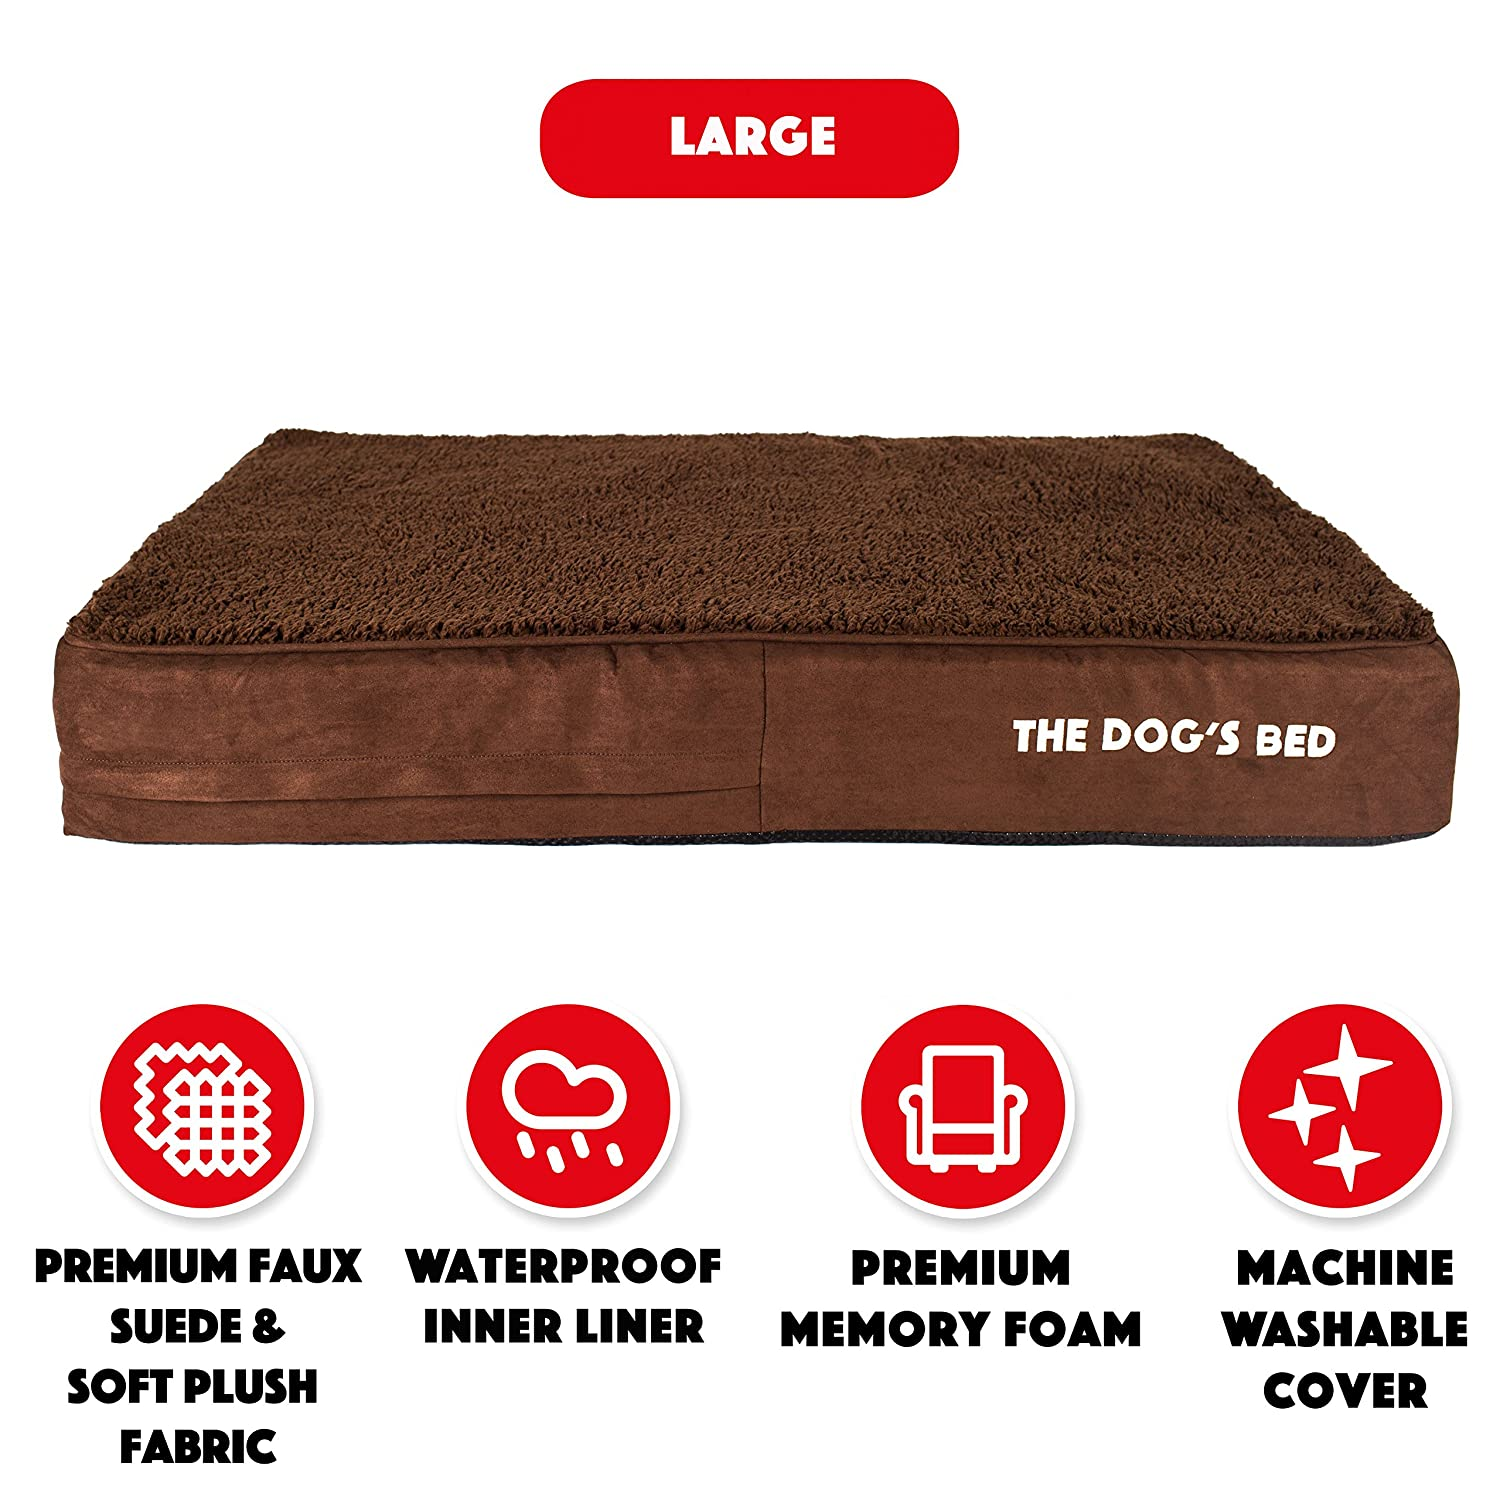 574ac694694 The Dog's Bed, Premium Orthopedic Memory Foam Waterproof Dog Beds, Eases  Pet Arthritis, Hip Dysplasia & Post Operation Pain, Quality Therapeutic  Supportive ...